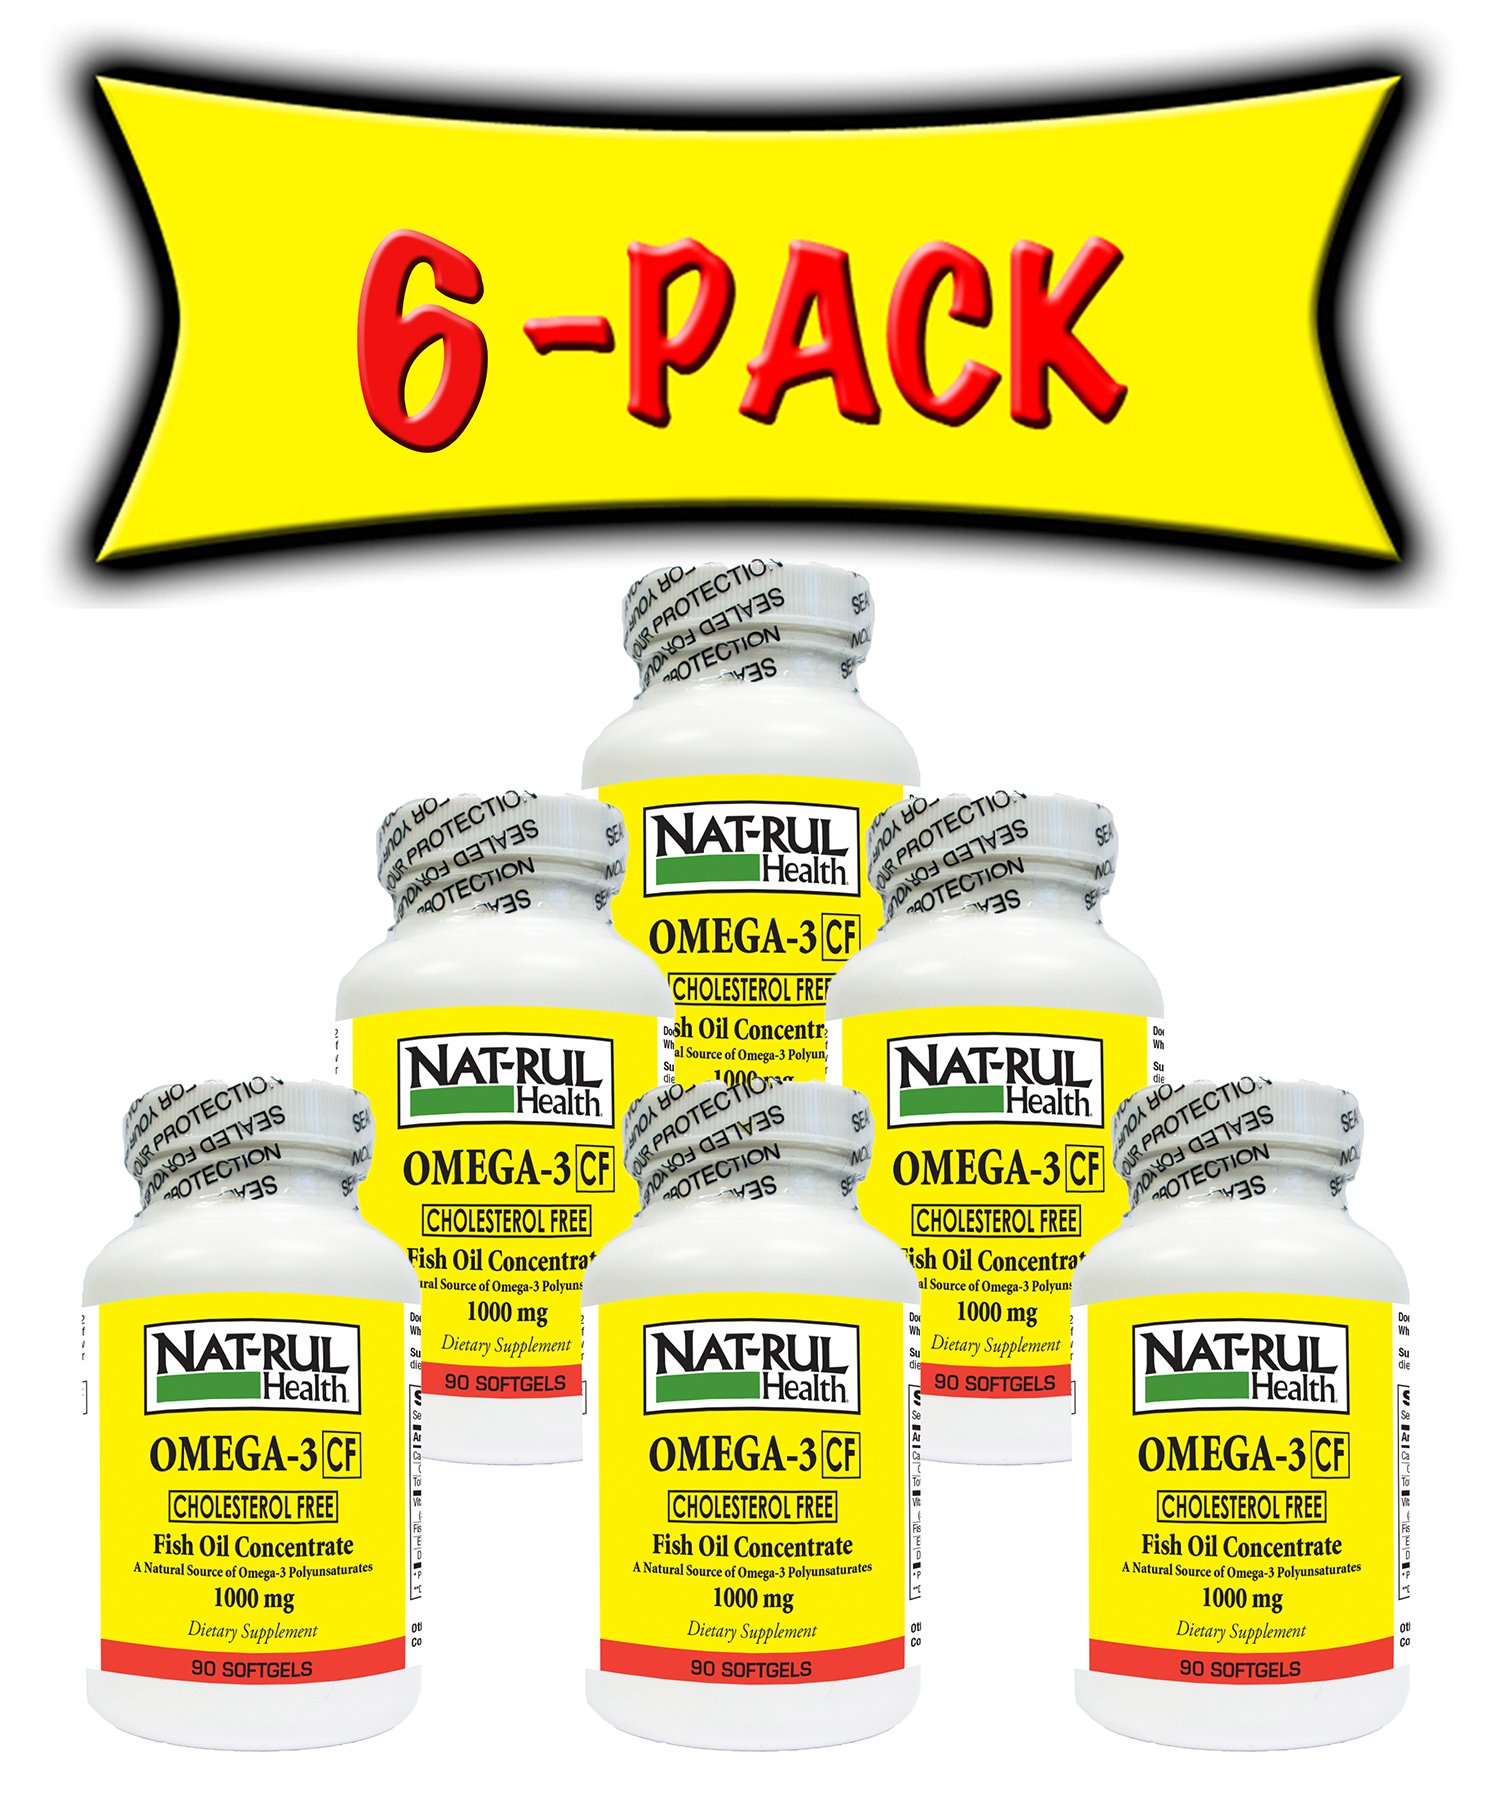 Nat-Rul Health Omega 3 Cholesterol Free 100mg 90 Softgels - 6 Pack by Nat-Rul Health